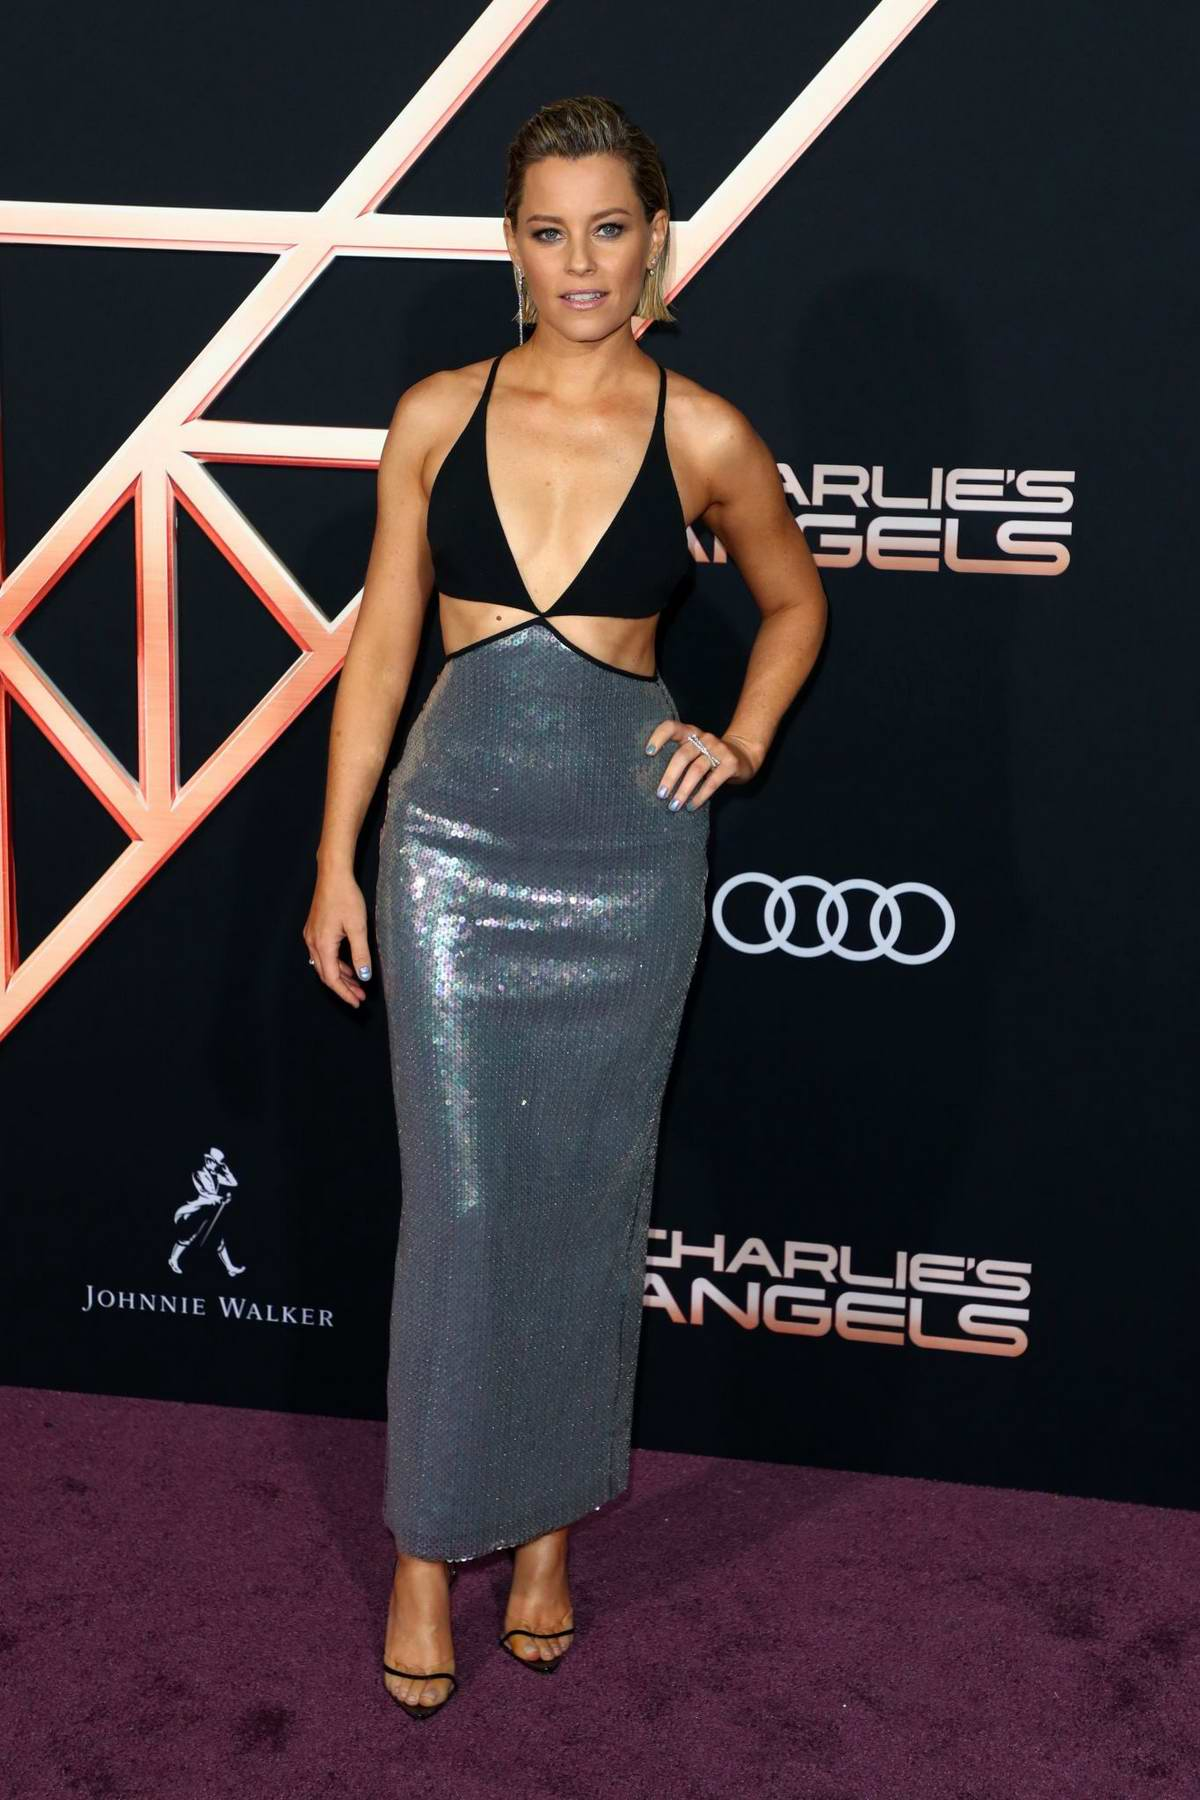 Elizabeth Banks attends the Premiere of 'Charlie's Angels' at Westwood Regency Theater in Los Angeles